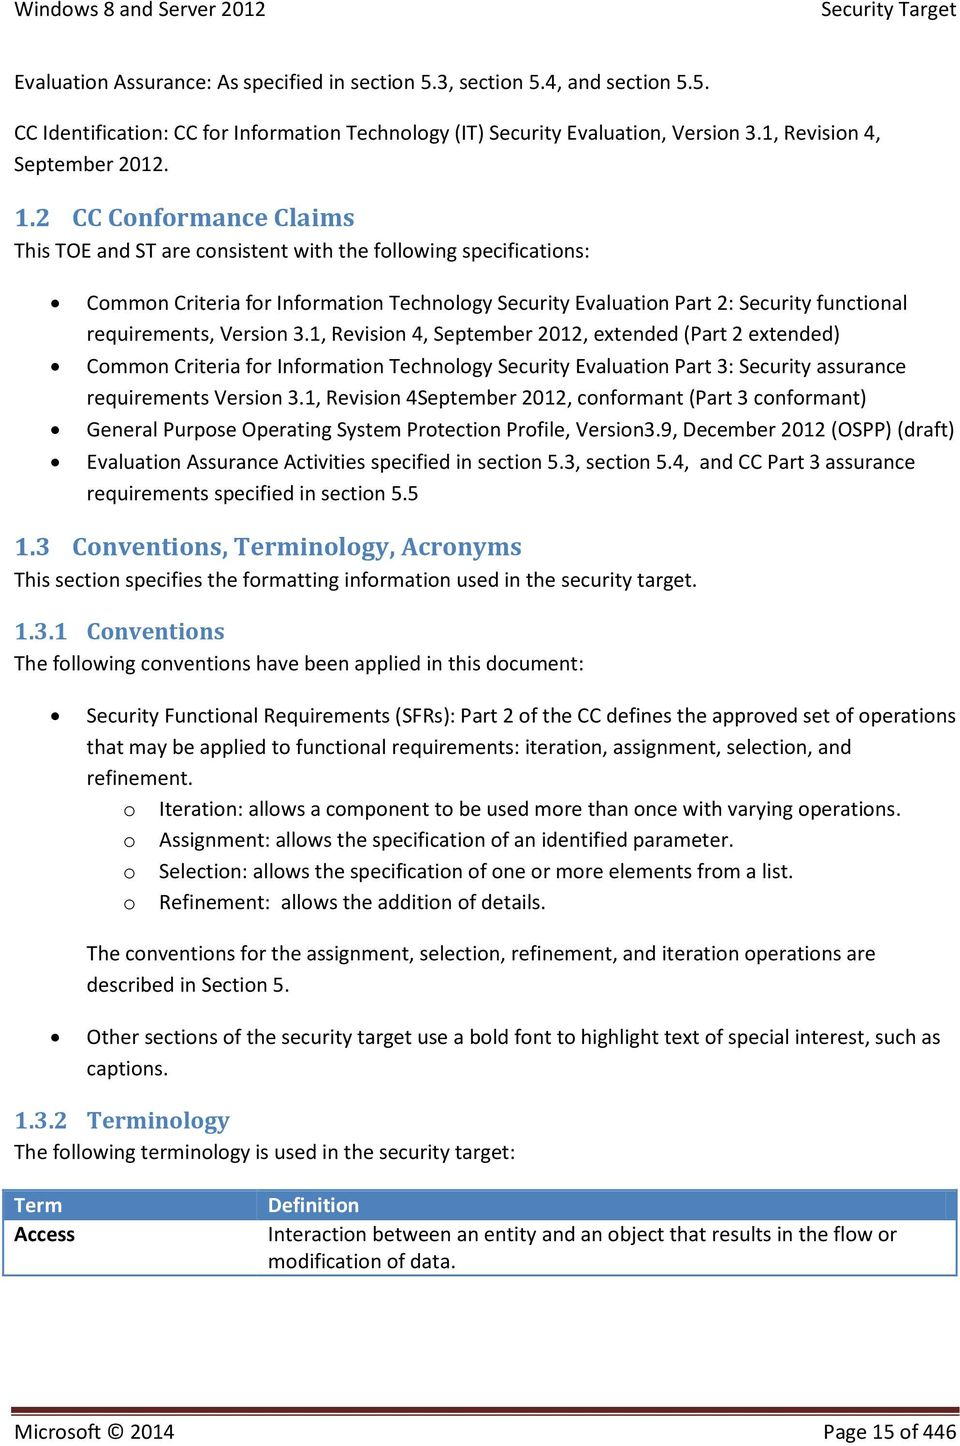 Version 3.1, Revision 4, September 2012, extended (Part 2 extended) Common Criteria for Information Technology Security Evaluation Part 3: Security assurance requirements Version 3.